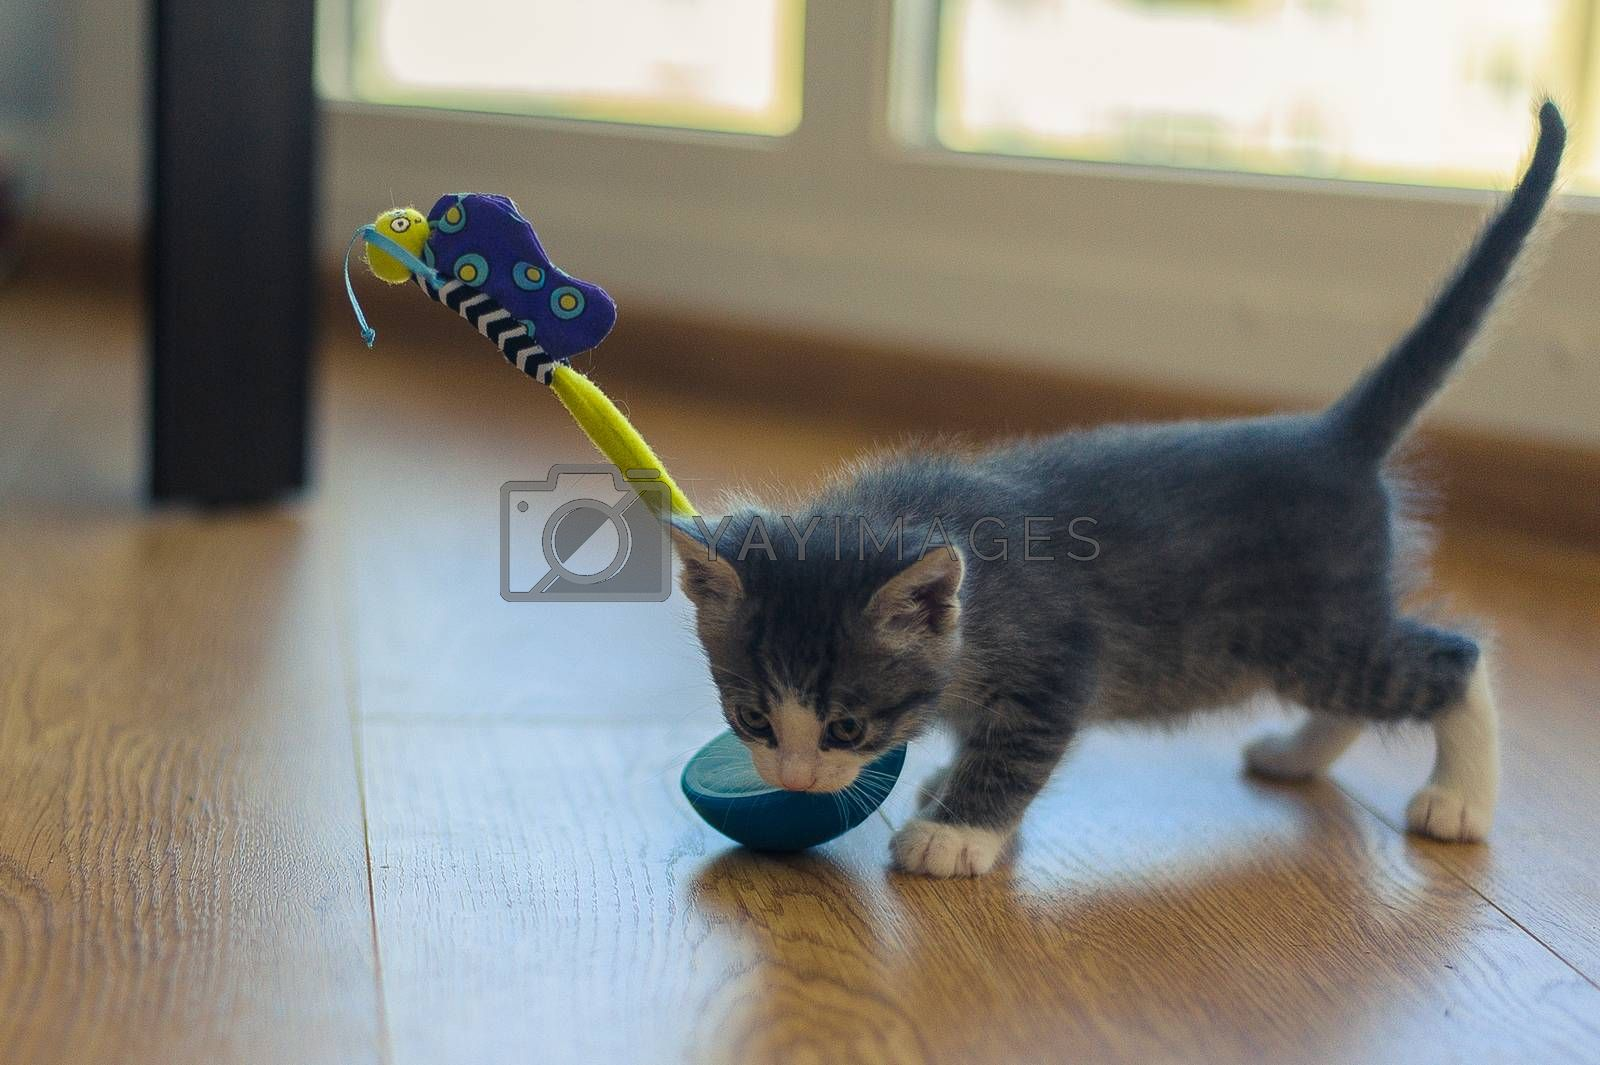 gray kitten is played with a tumbler toy on a wooden floor